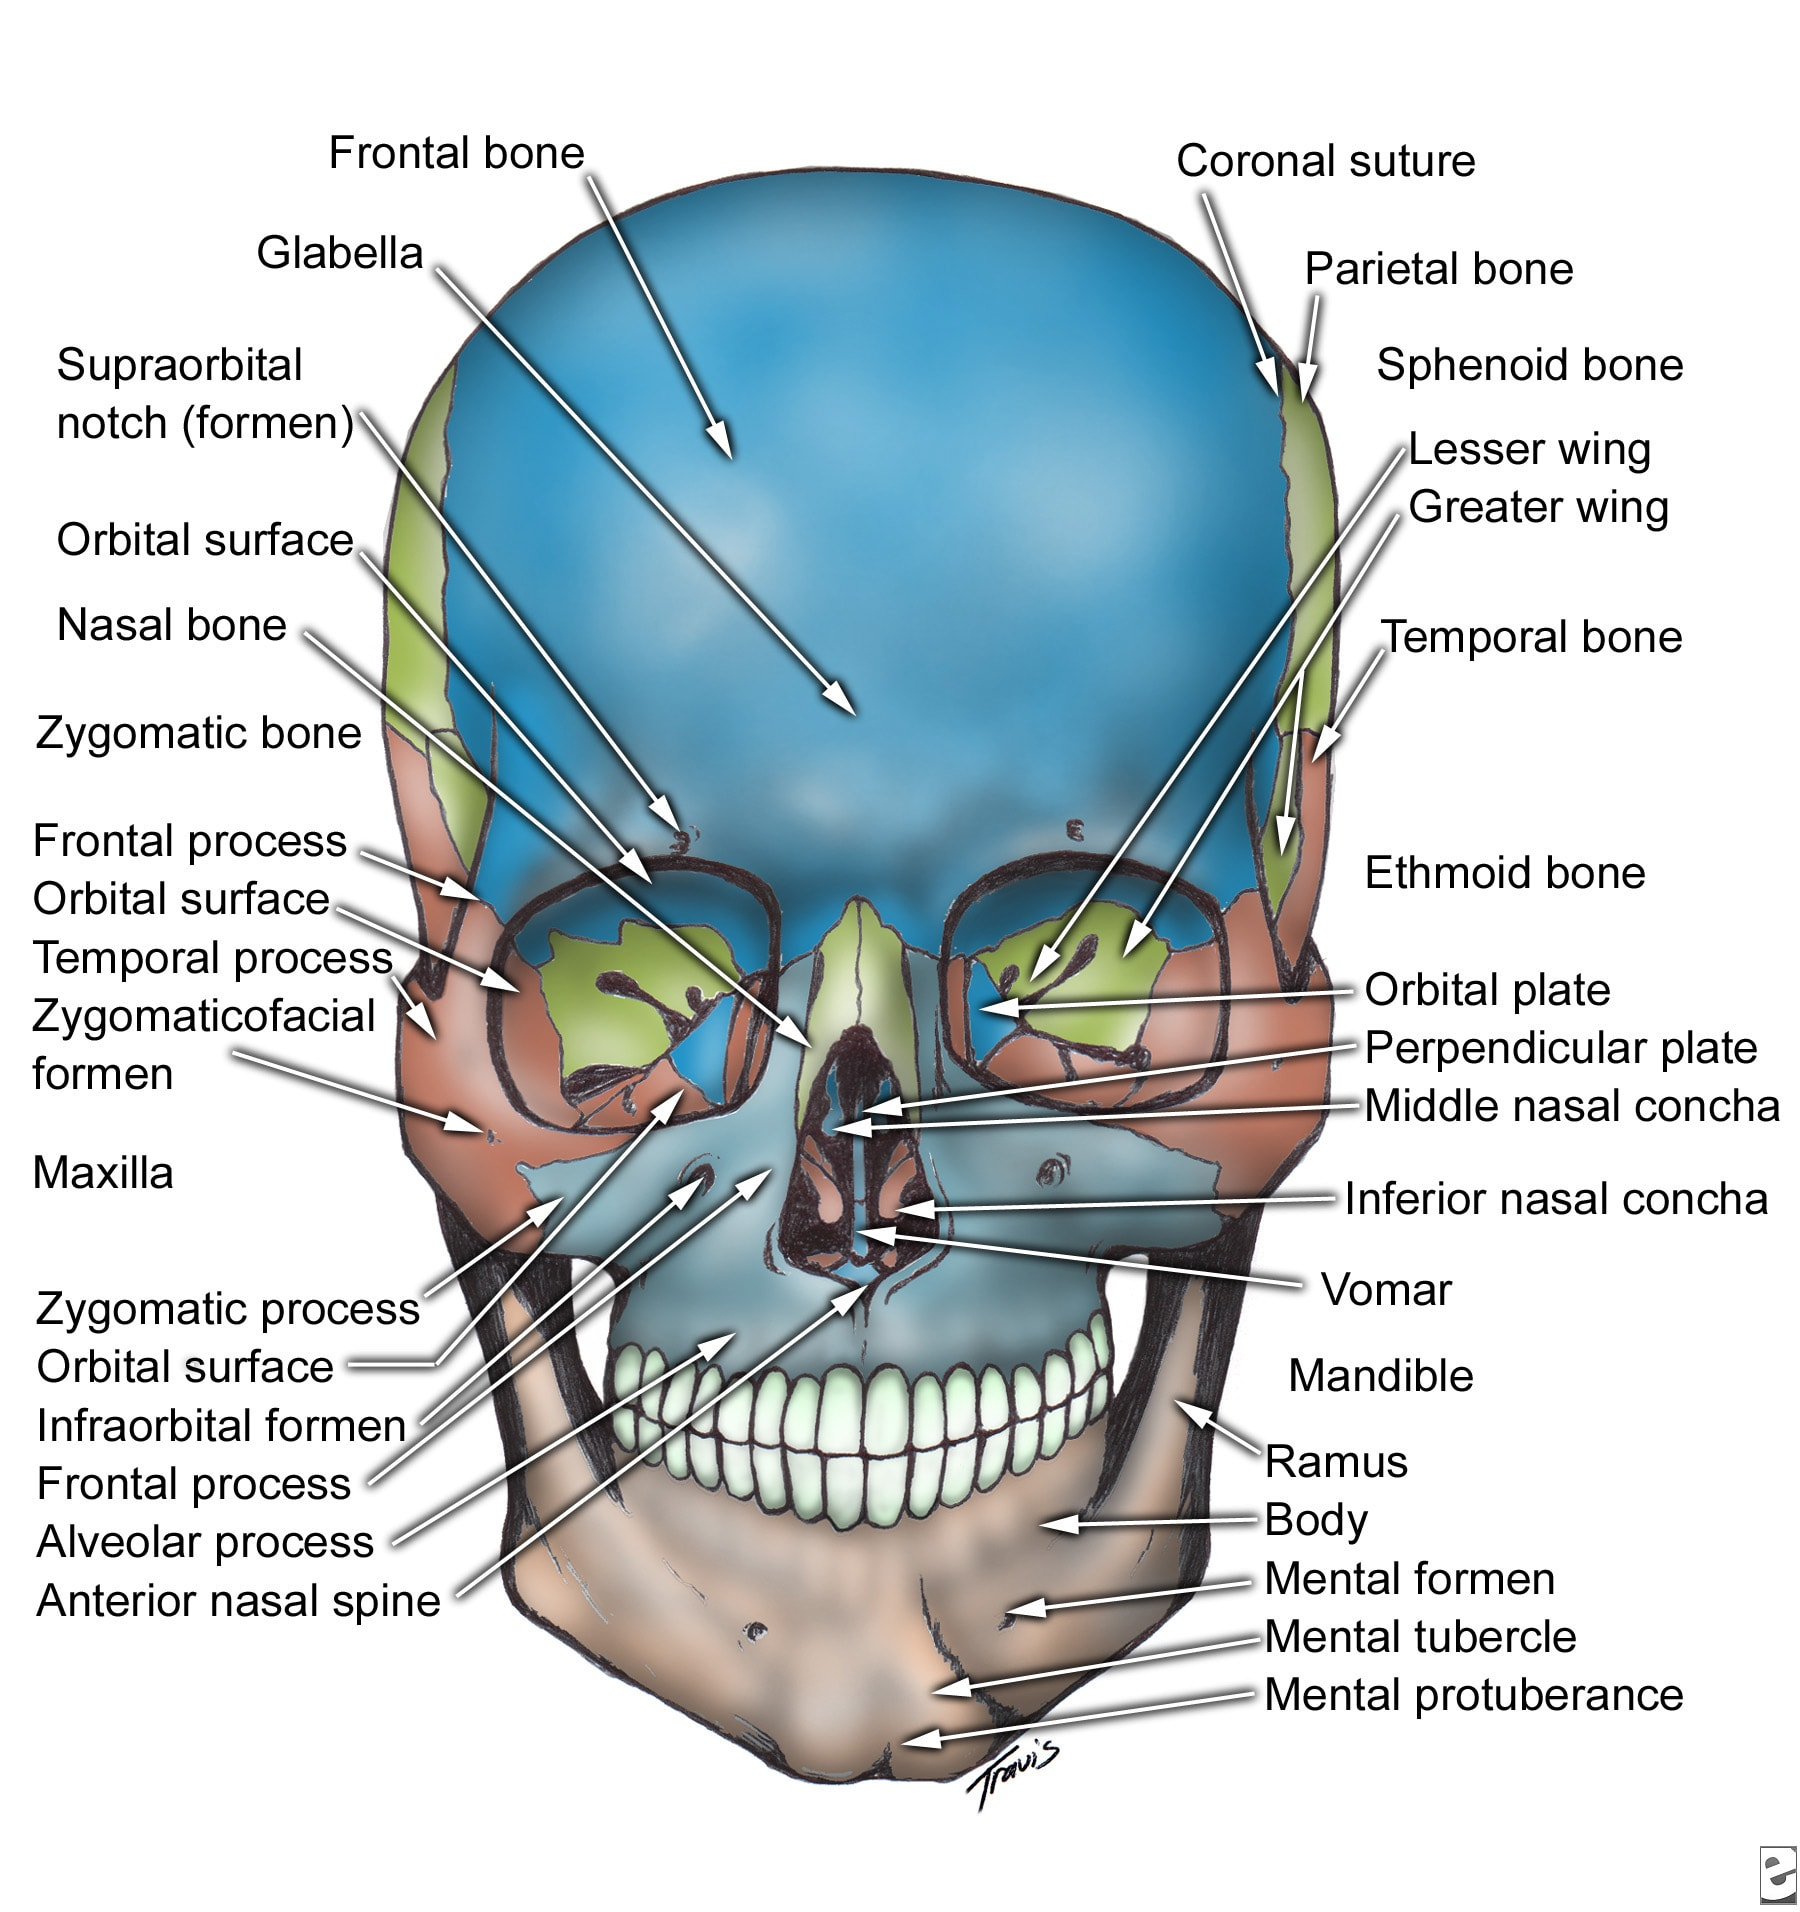 ORAL & MAXILLO-FACIAL SURGERY: Facial Bone Anatomy